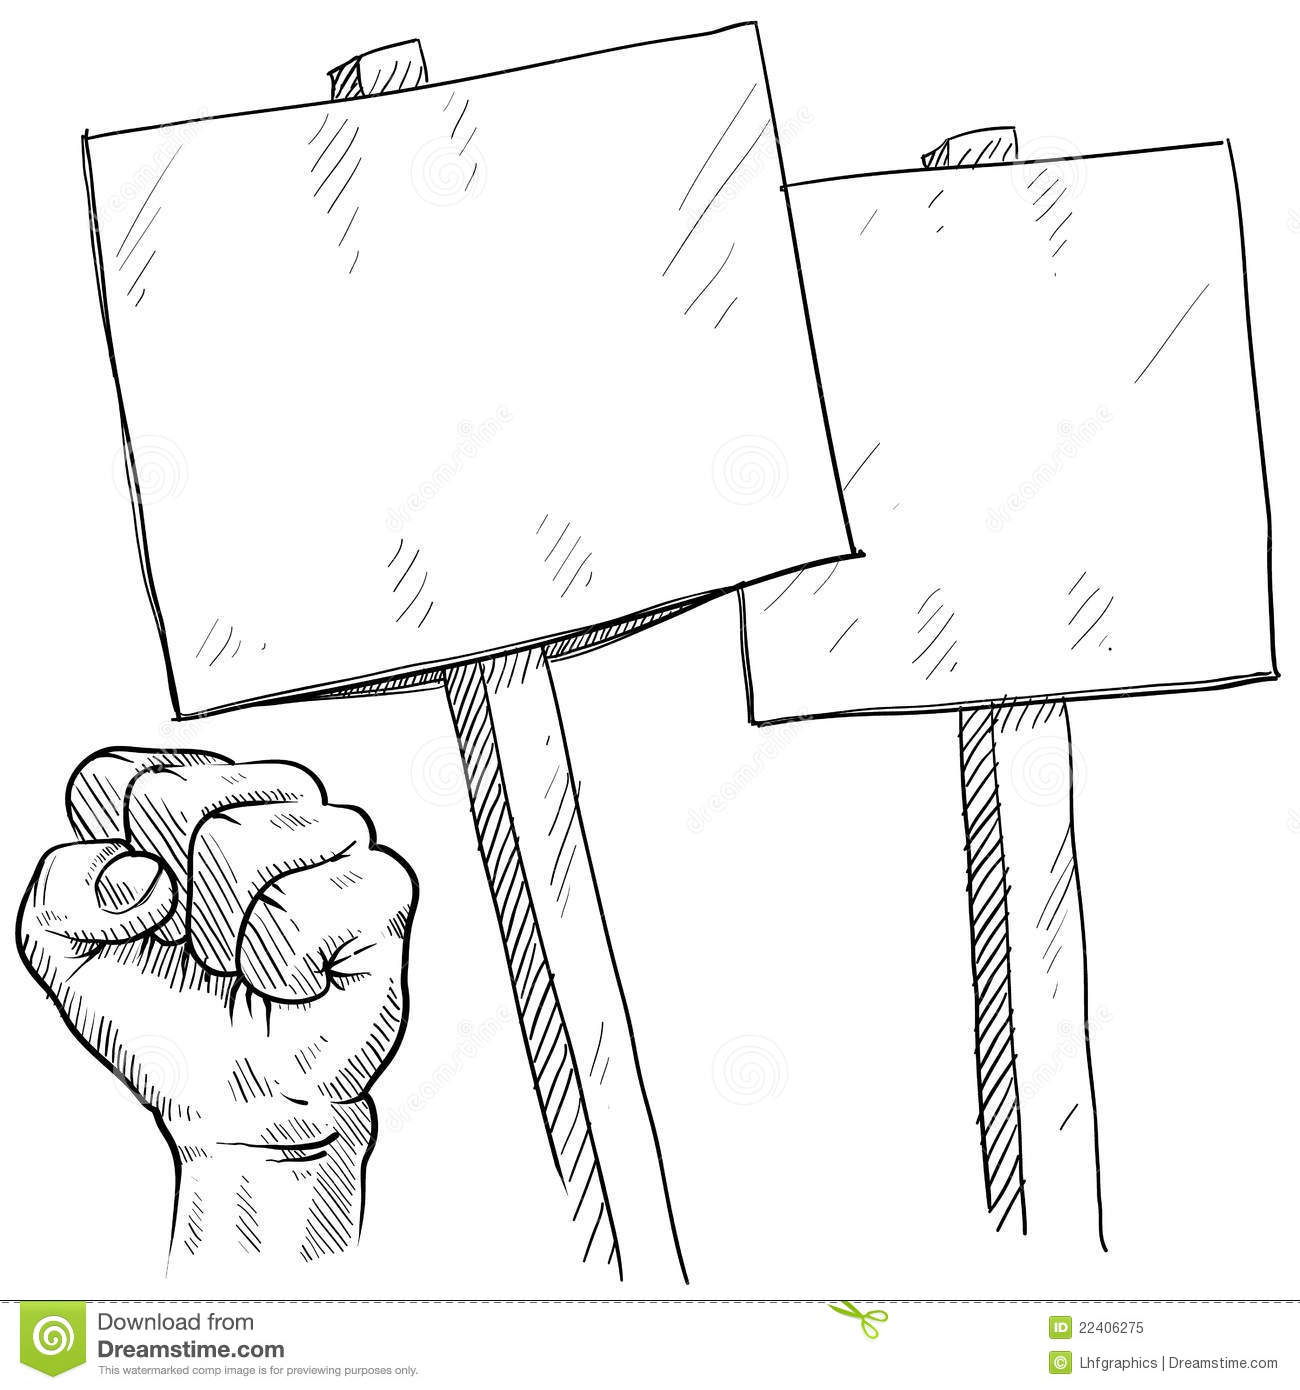 Protest sign clipart clipart transparent download Blank picket or protest signs | Clipart Panda - Free Clipart Images clipart transparent download